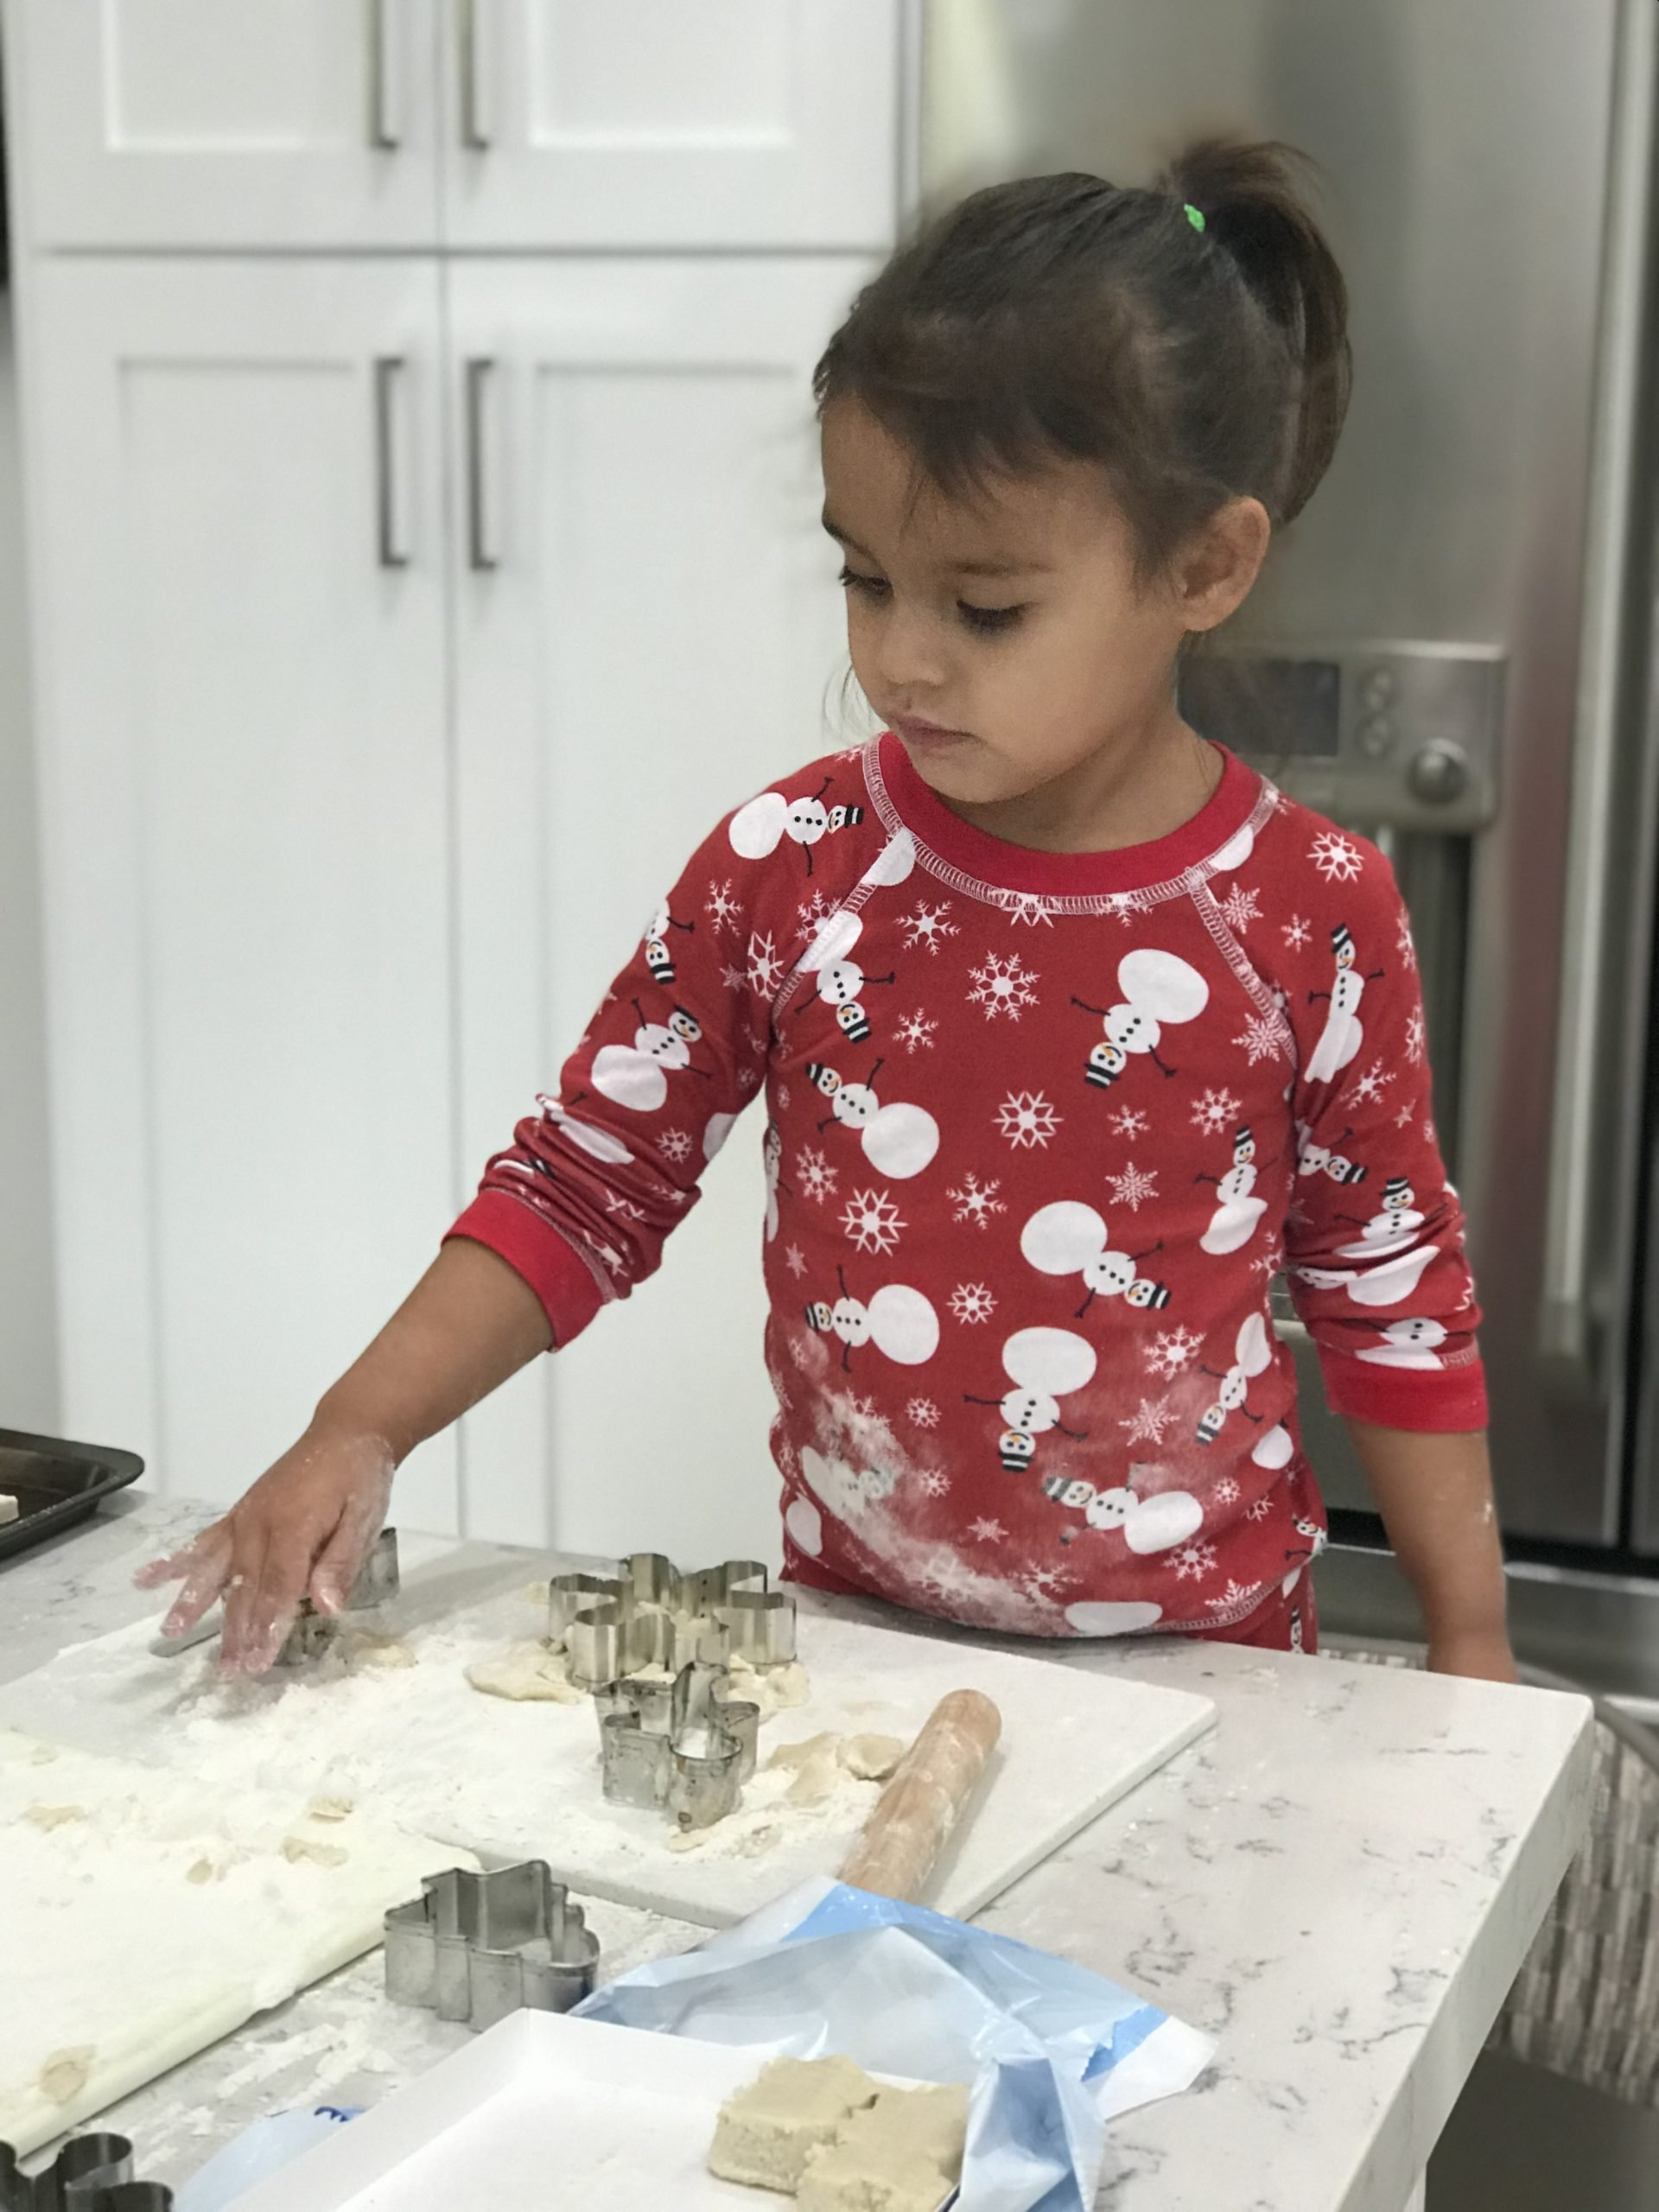 girl wearing snowman print pajamas making cookies